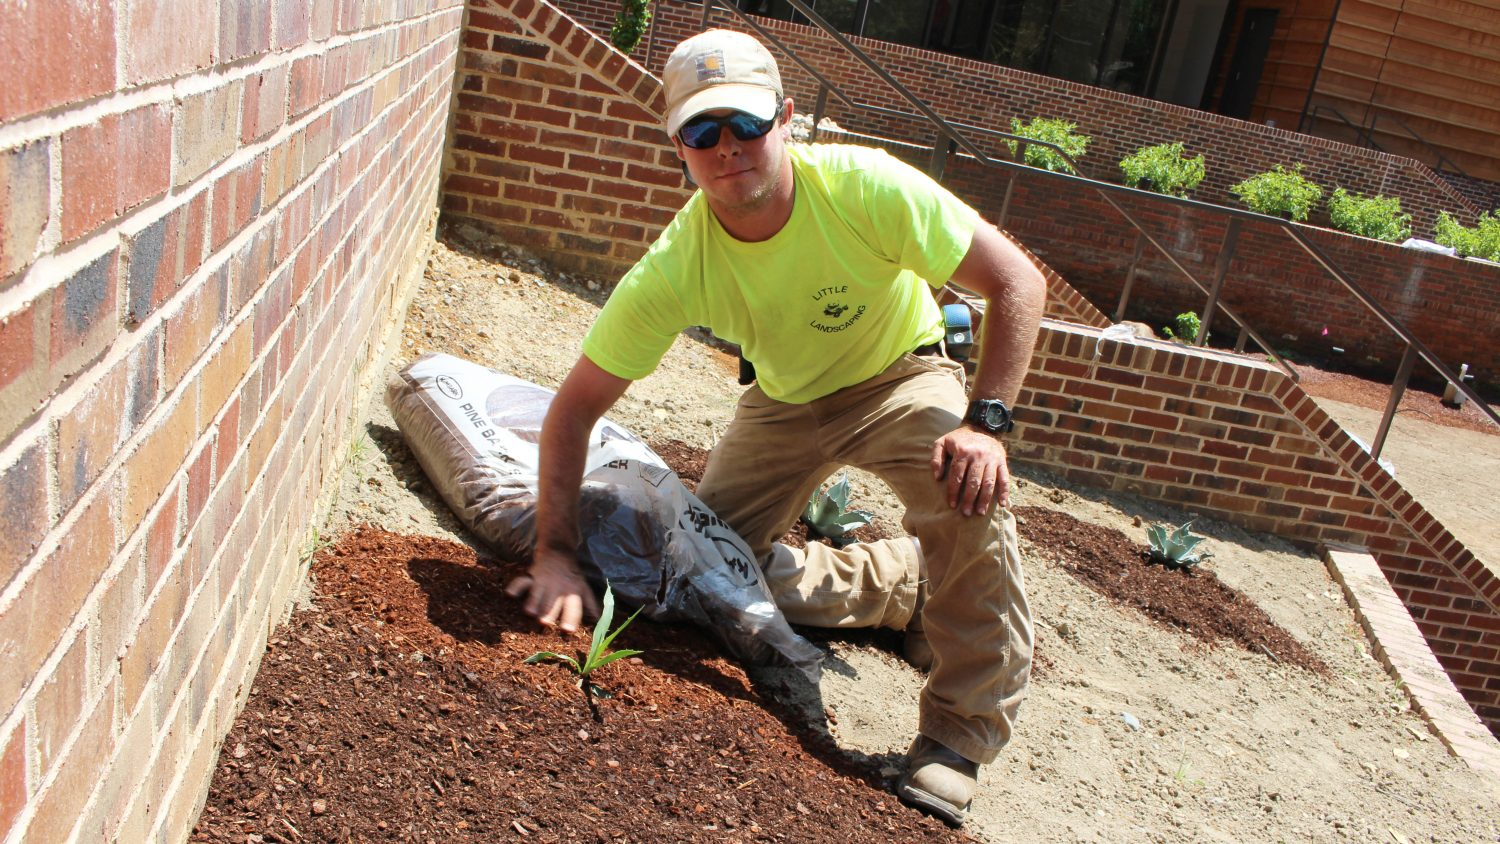 Student near brick walls spreading pine bark mulch around a plant.